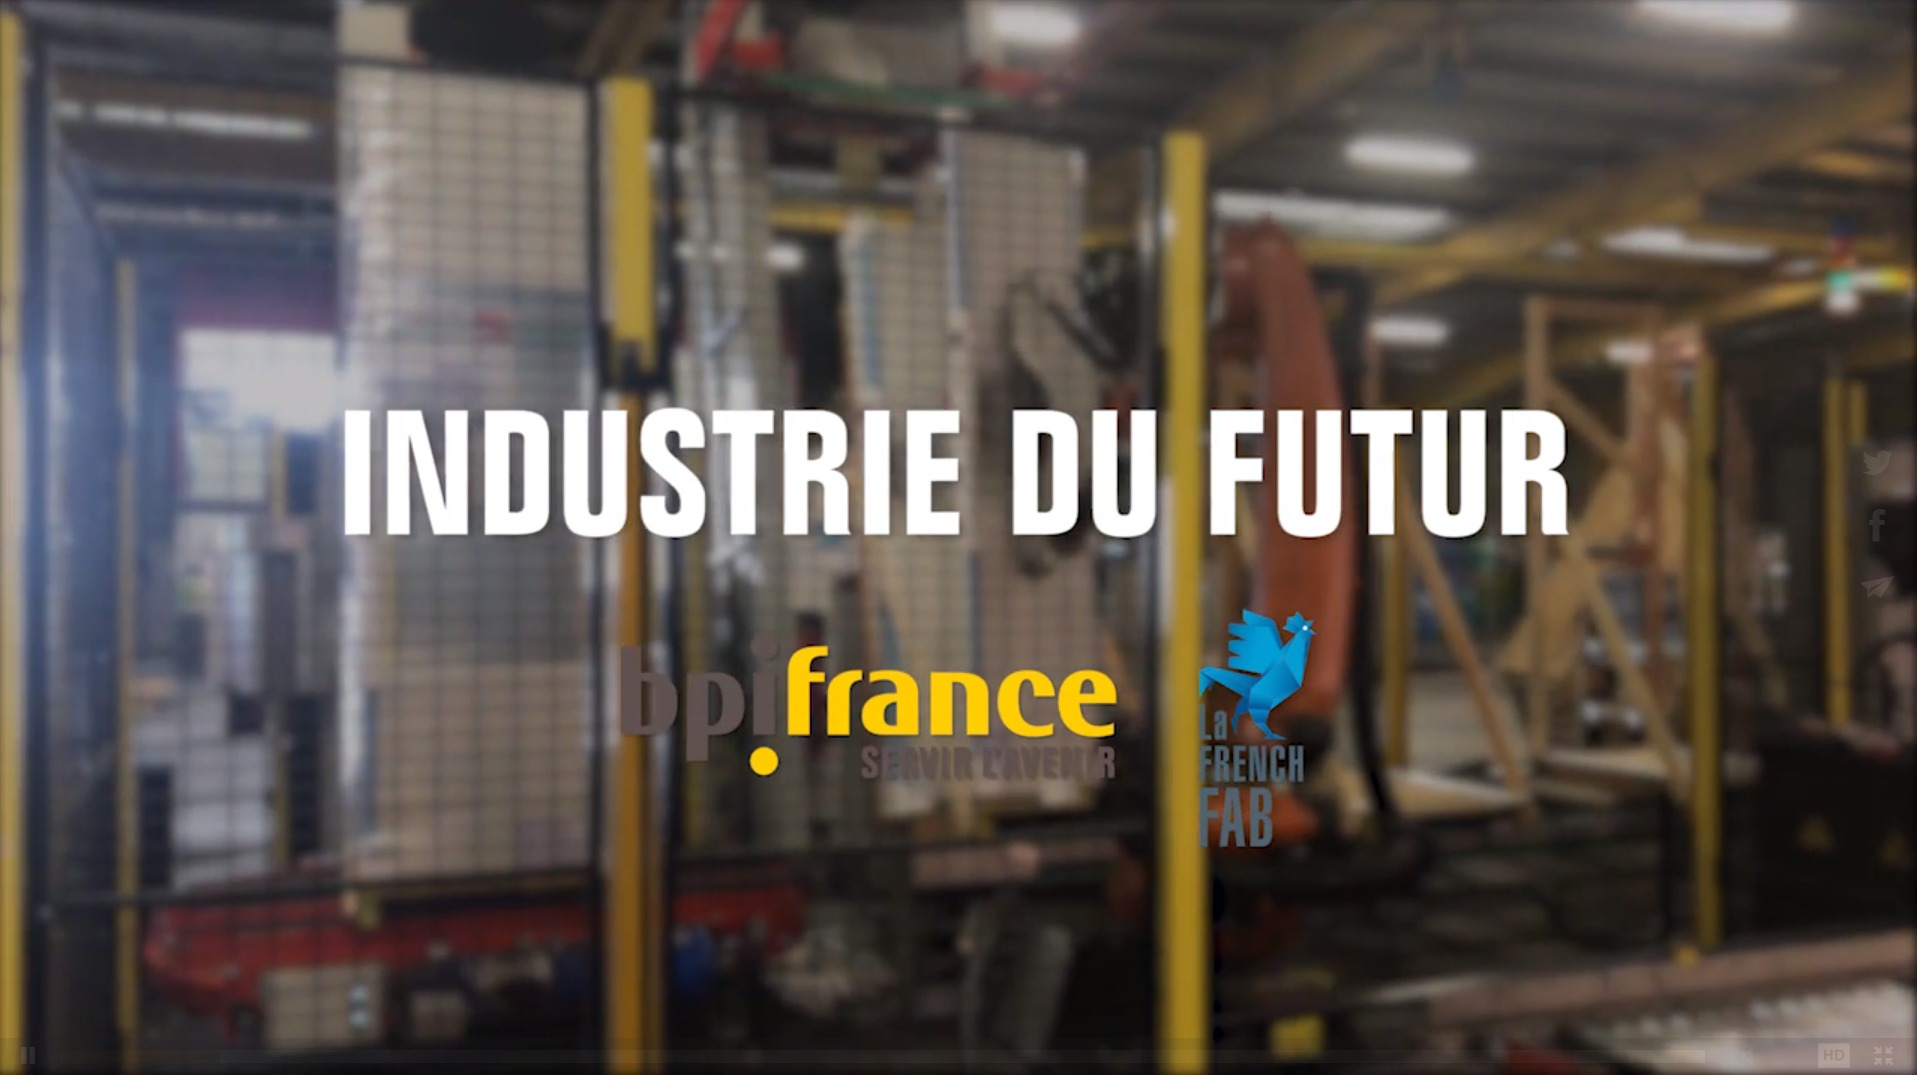 BPI FRANCE industrie du futur